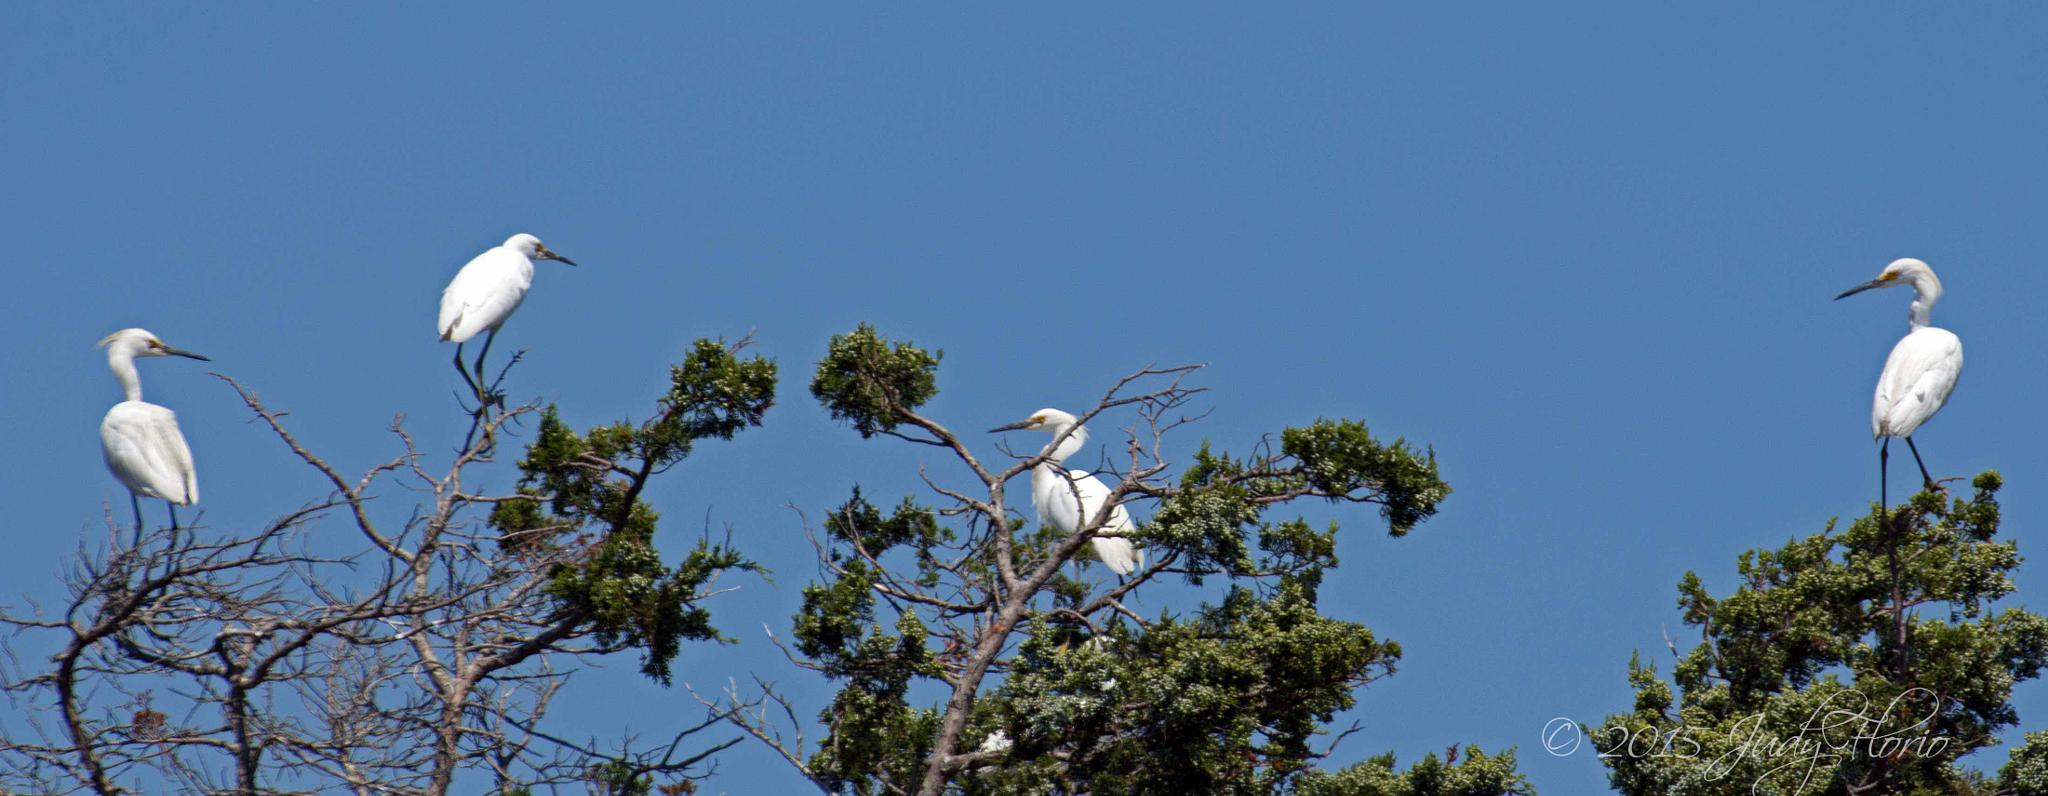 An Egret Convention by Judy Florio